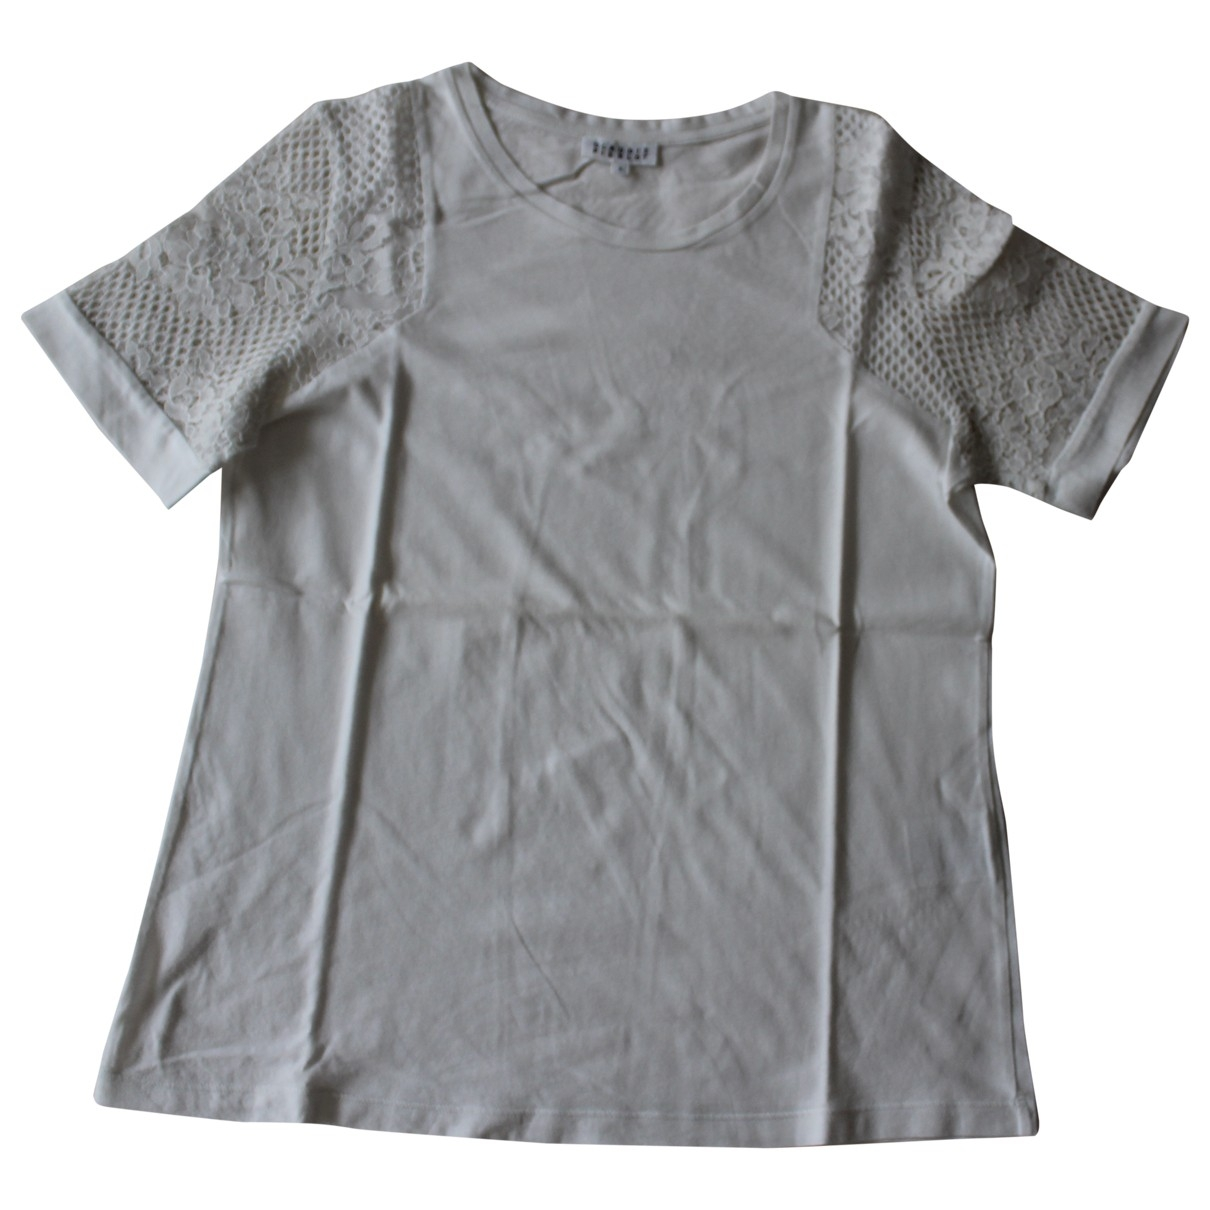 Camiseta Claudie Pierlot